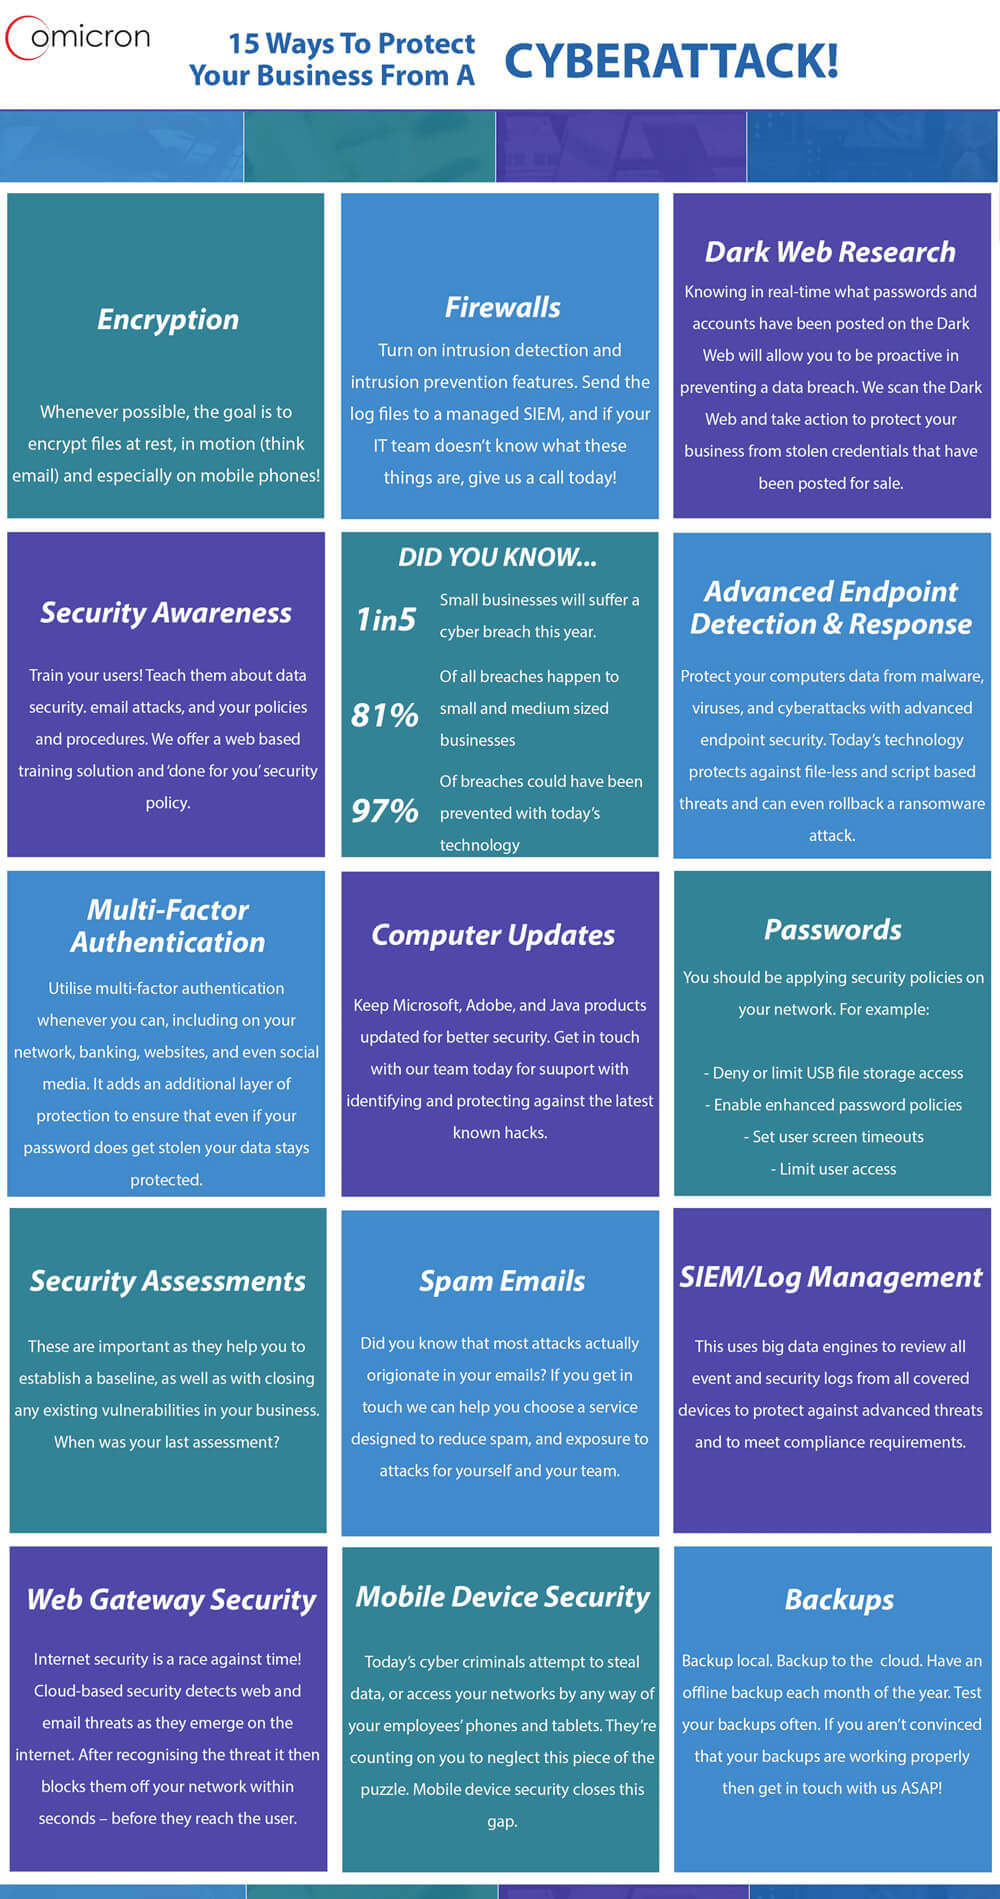 14 Ways To Protect Your Business From A Cyberattack | IT Systems & Solutions | IT Support Herfordshire | Omicron Solutions